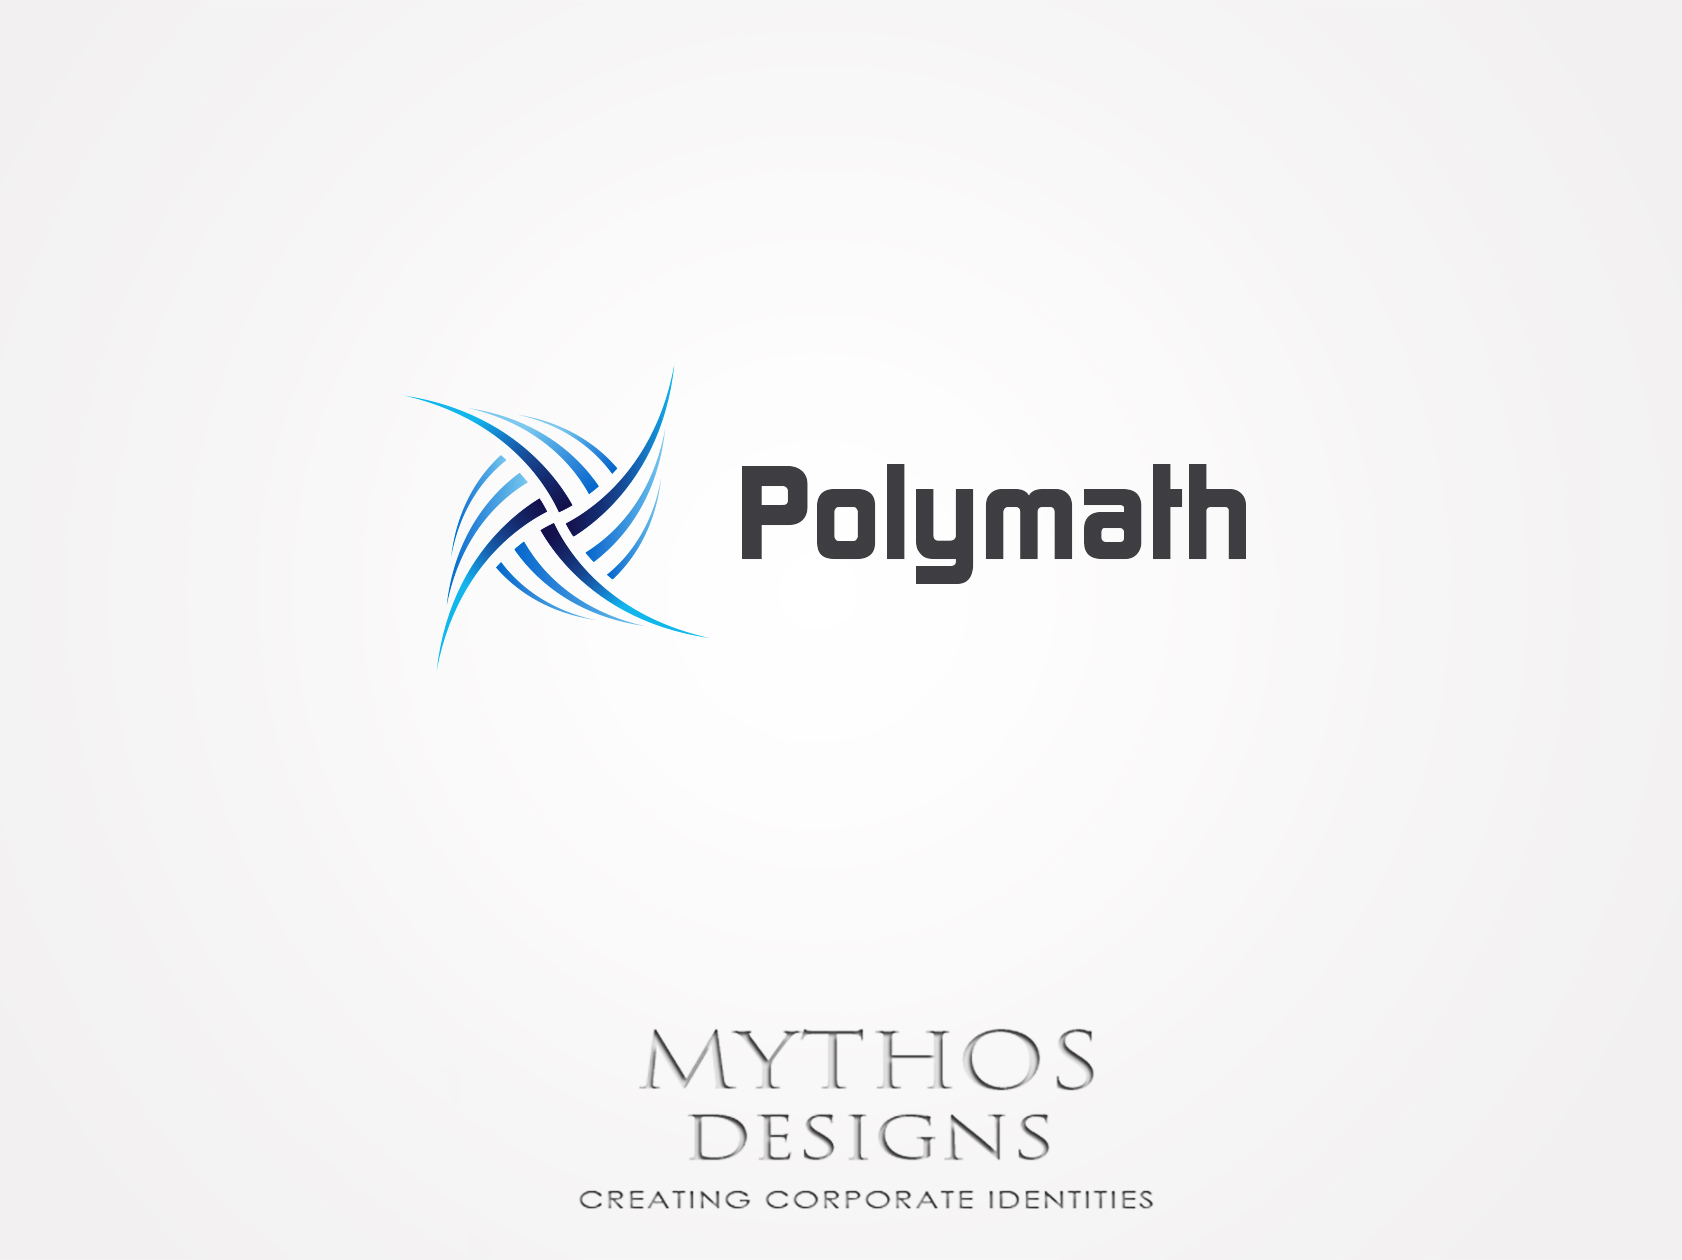 Logo Design by Mythos Designs - Entry No. 29 in the Logo Design Contest Imaginative Logo Design for Polymath.